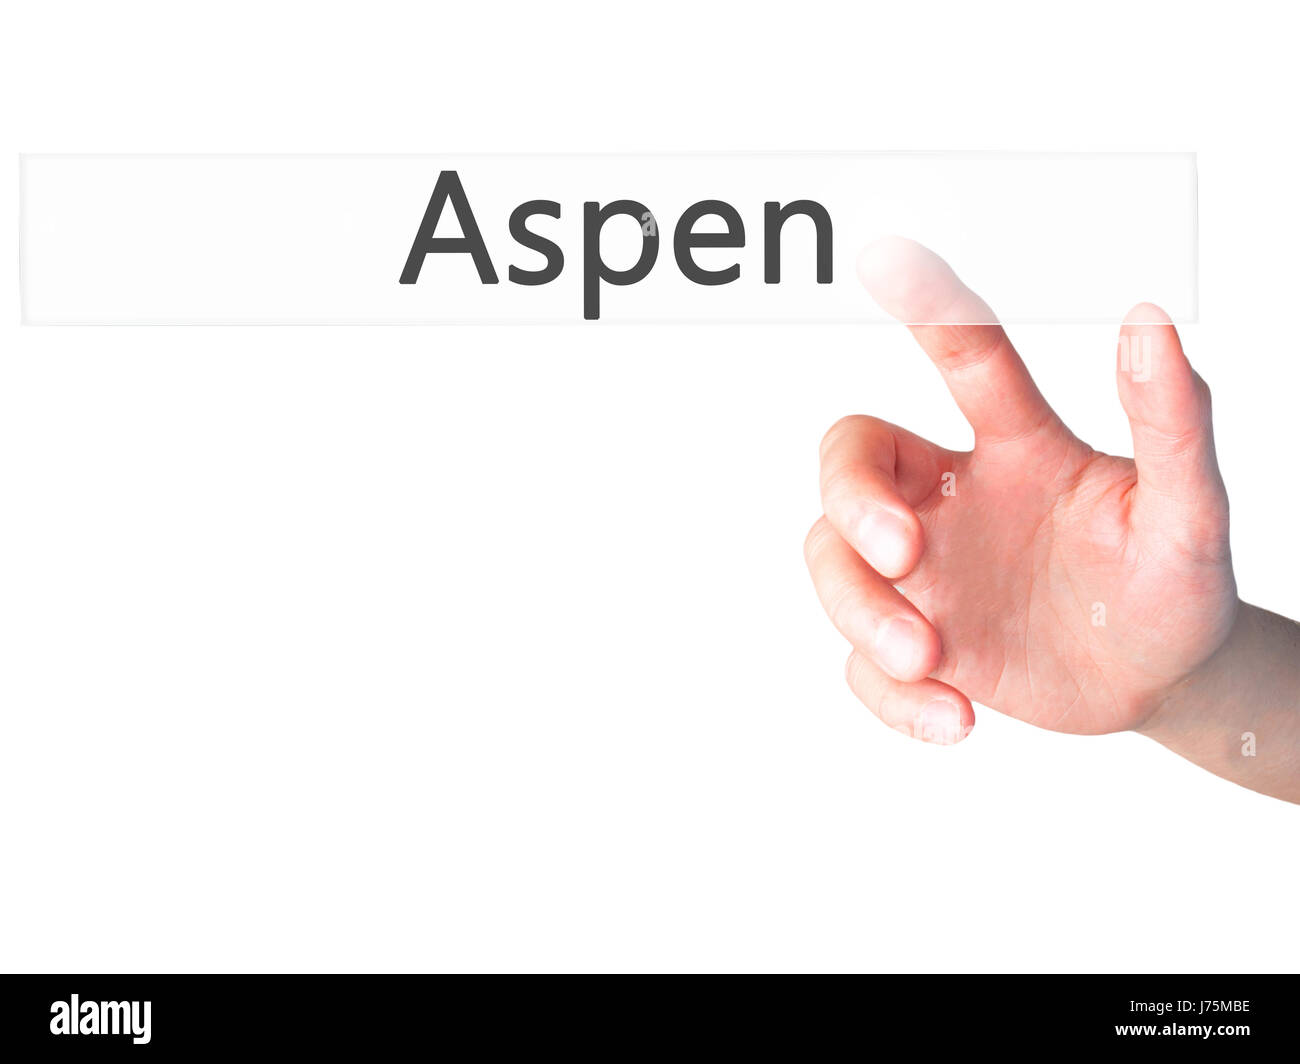 Aspen - Hand pressing a button on blurred background concept . Business, technology, internet concept. Stock Photo - Stock Image